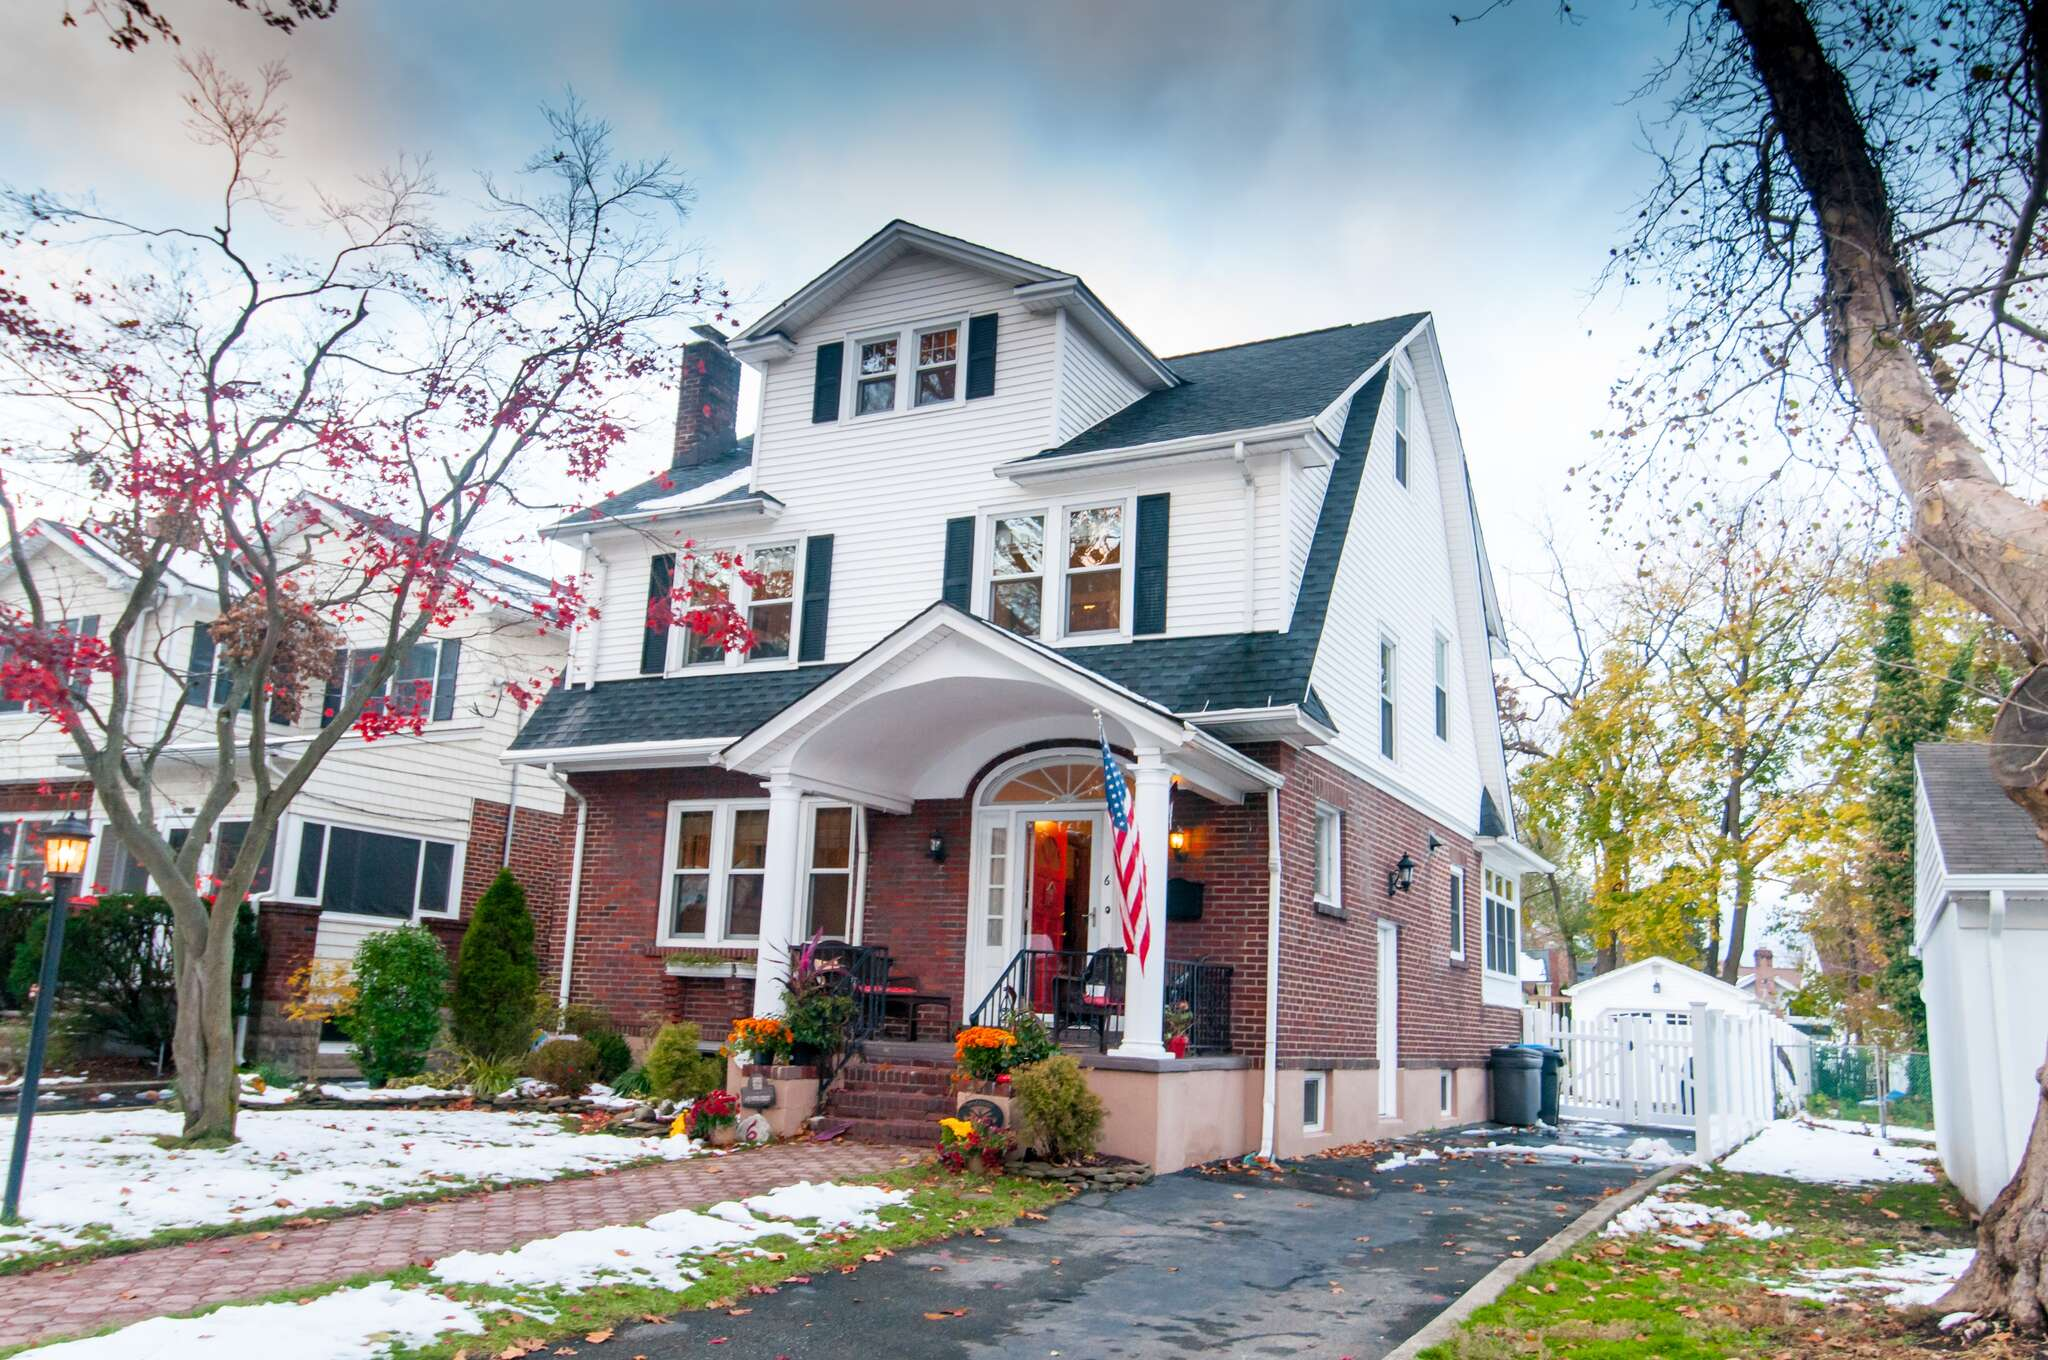 Single Family for Sale at 6 Juniper Street Metuchen, New Jersey 08840 United States